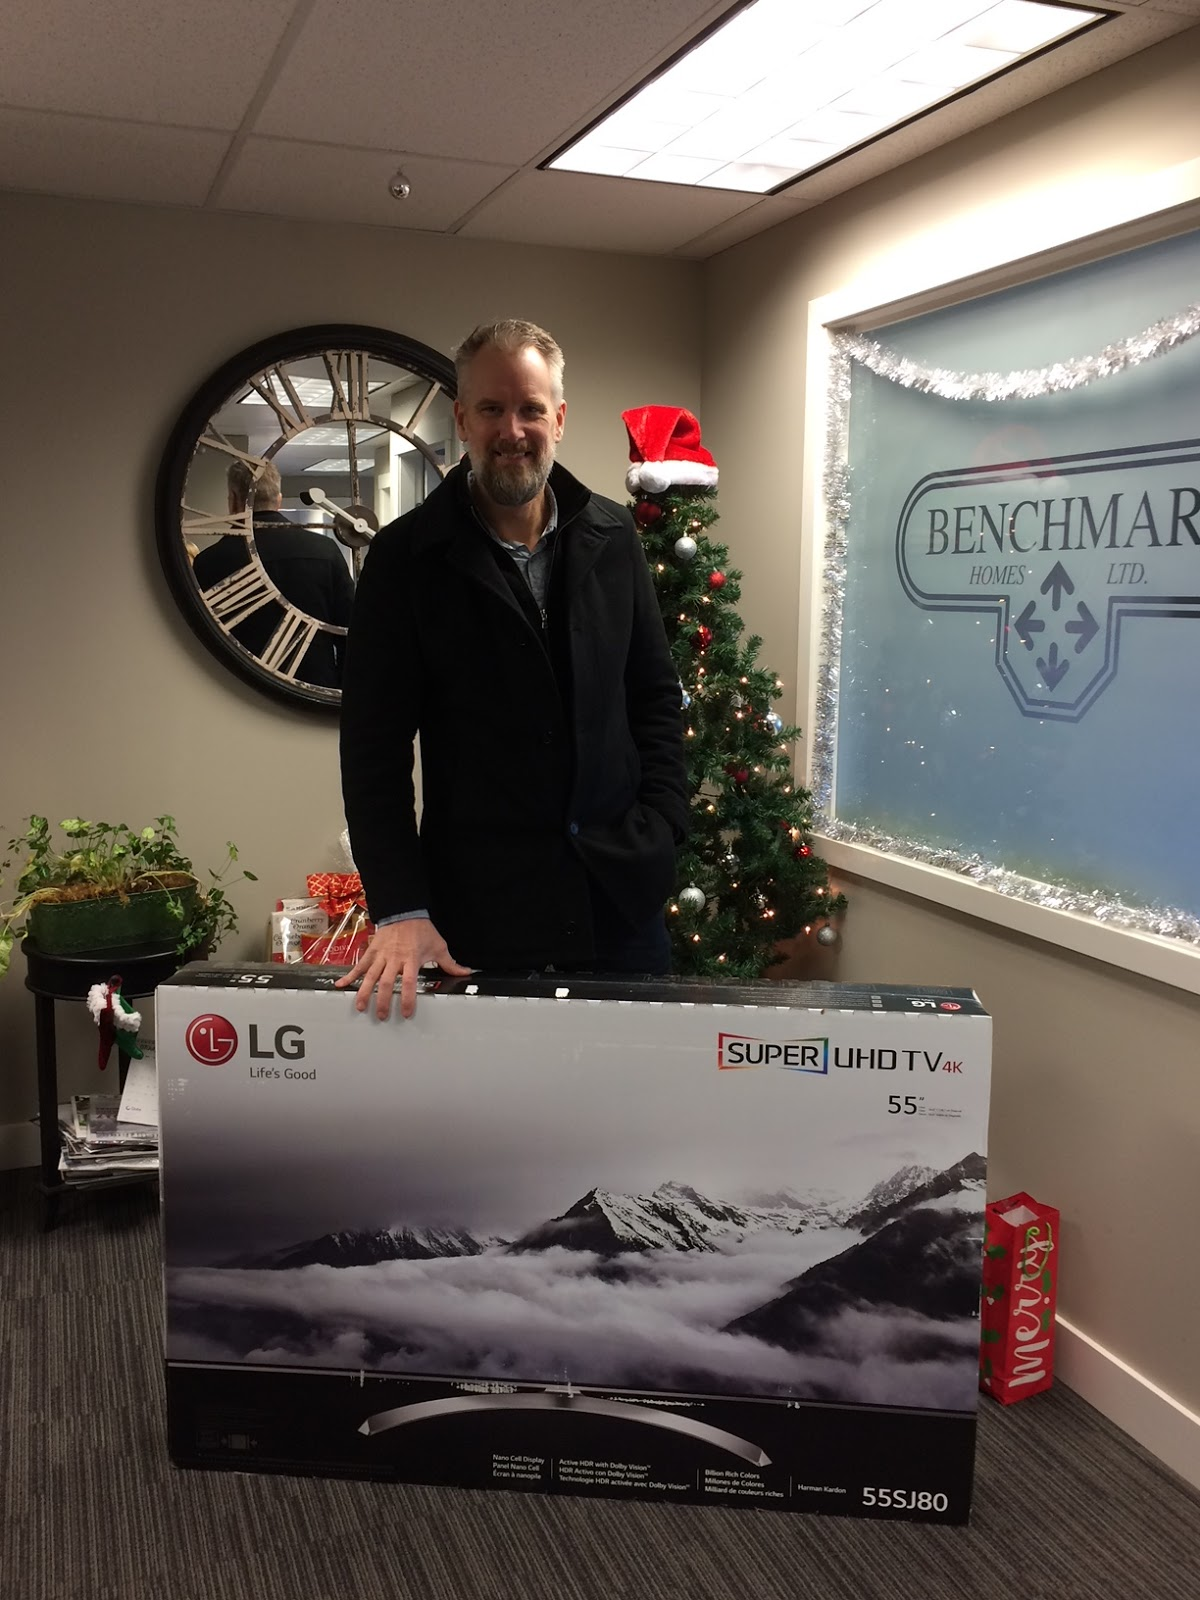 A lucky winner of our Benchmark Homes draw